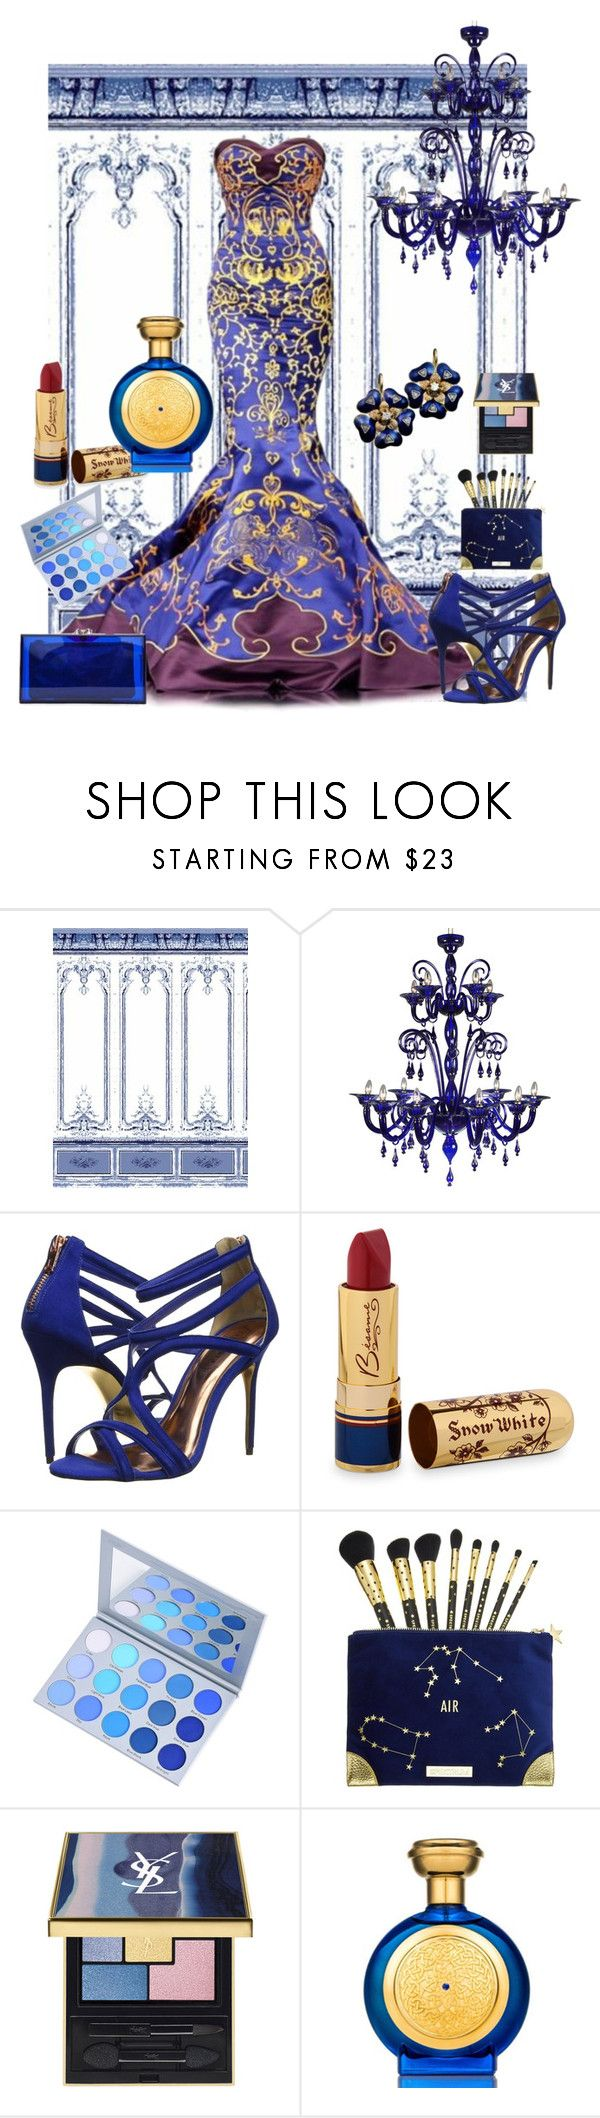 """""""The Royal Gala"""" by rosalindmarshall ❤ liked on Polyvore featuring Royal Delft, Ted Baker, Bésame and Boadicea the Victorious"""